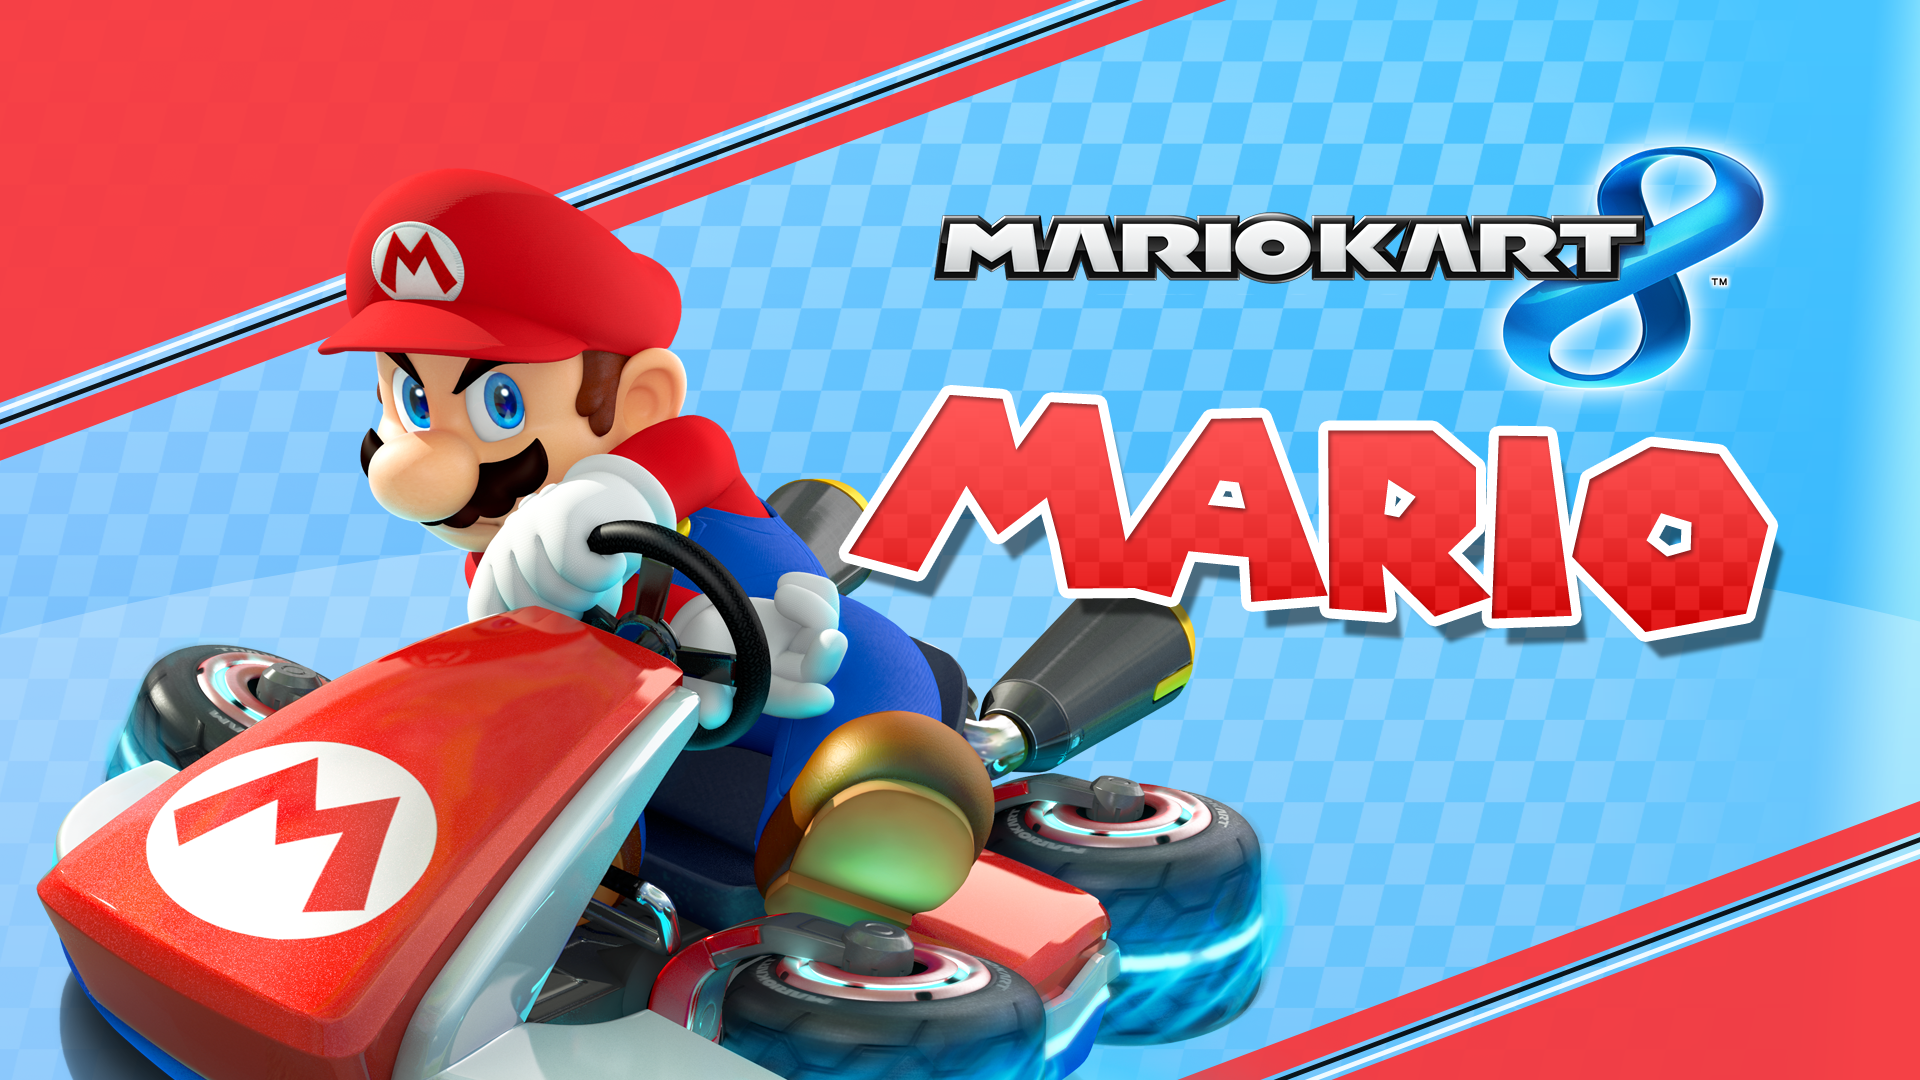 mario 1920 x 1080 mario kart 8 wallpaper by maxigamer on